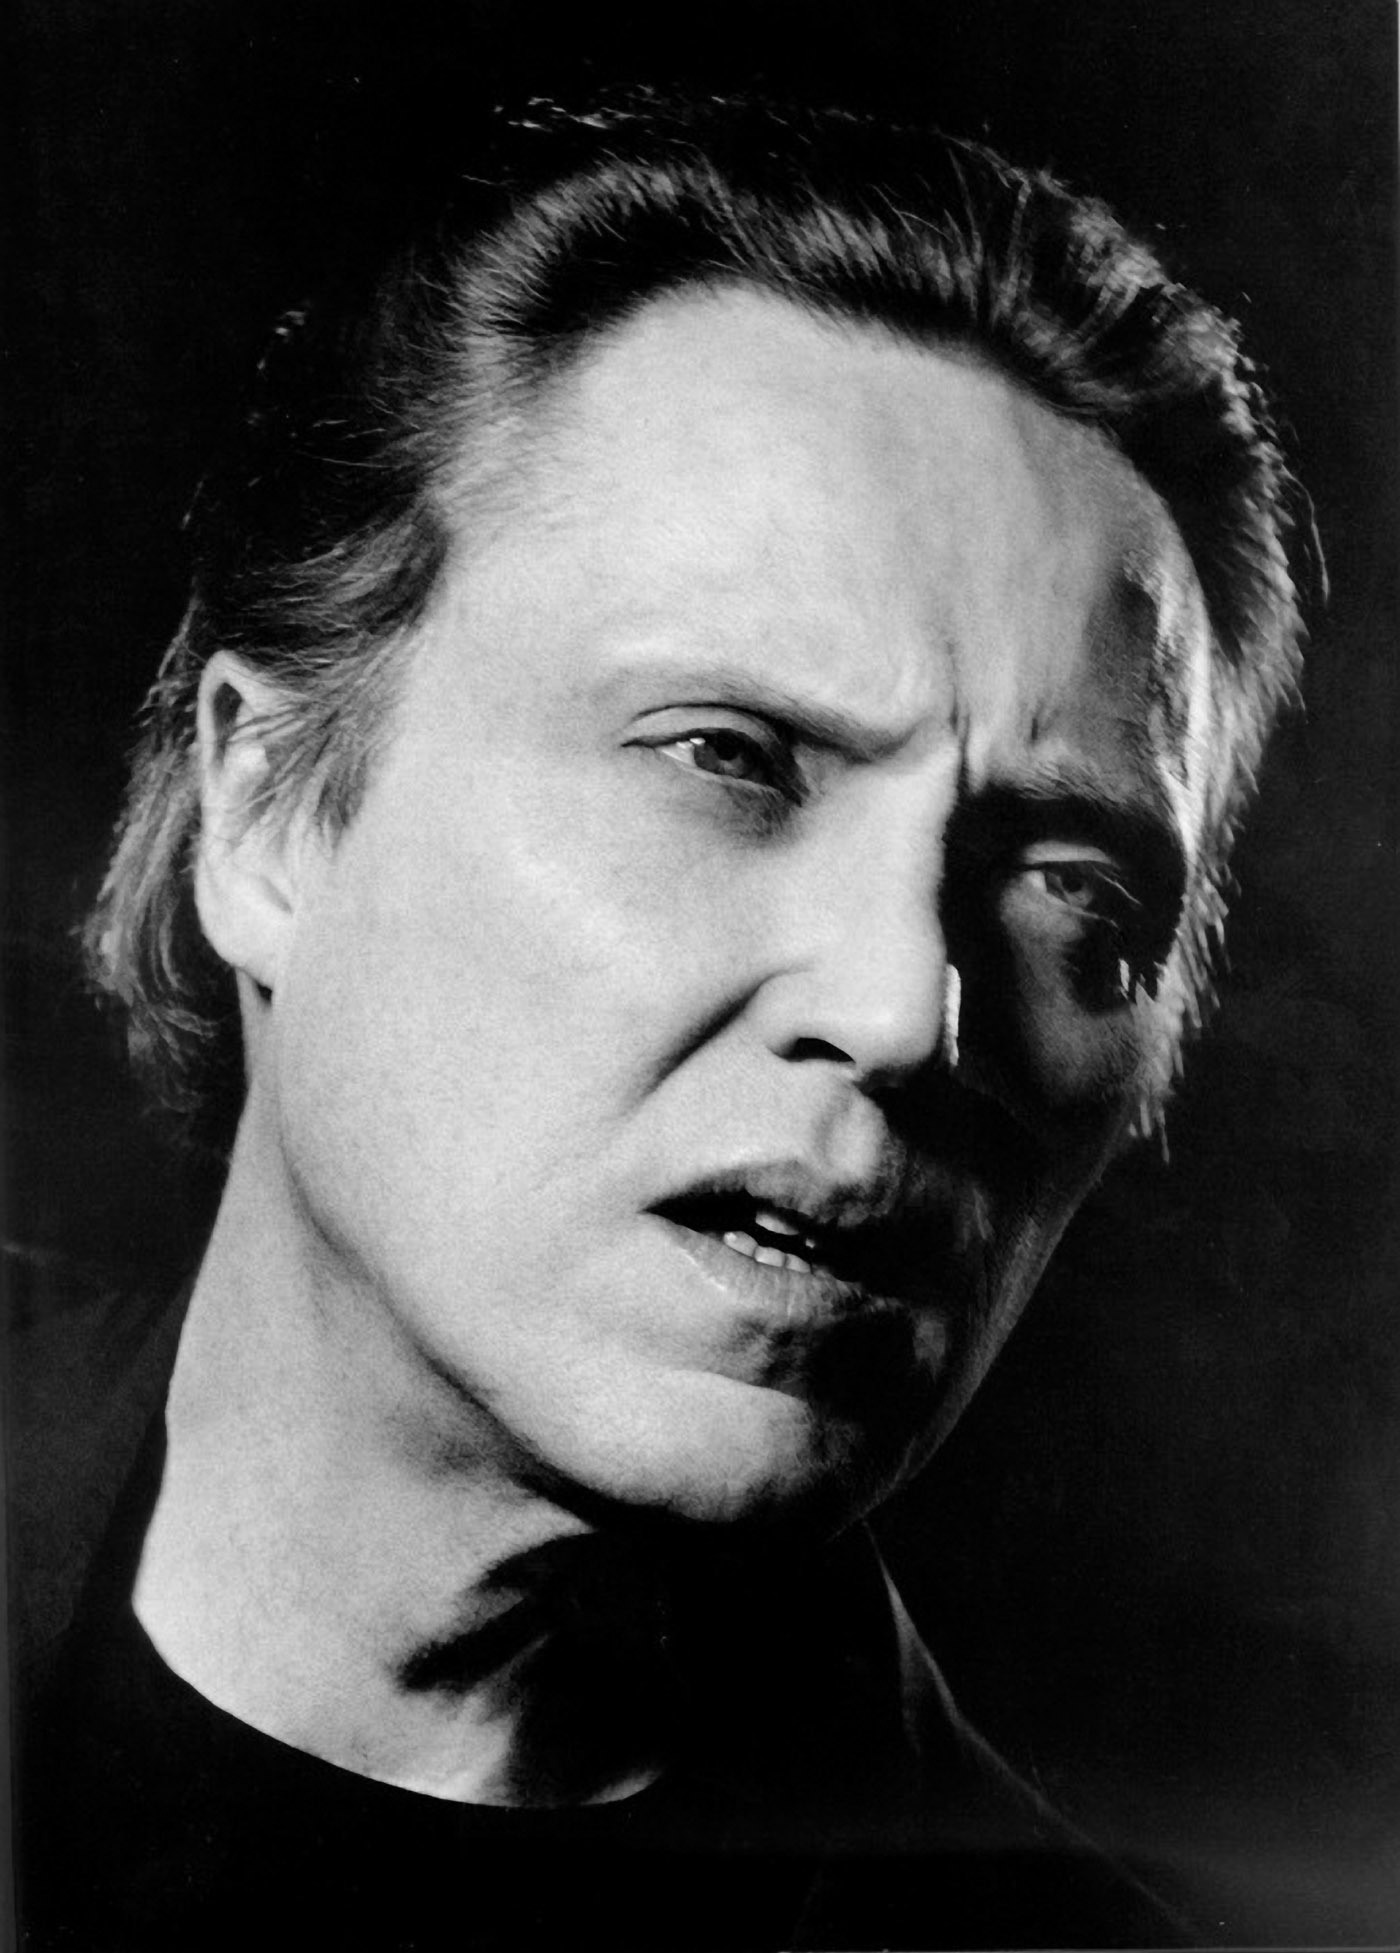 christopher - CHRISTOPHER WALKEN Photo (1279364) - Fanpop